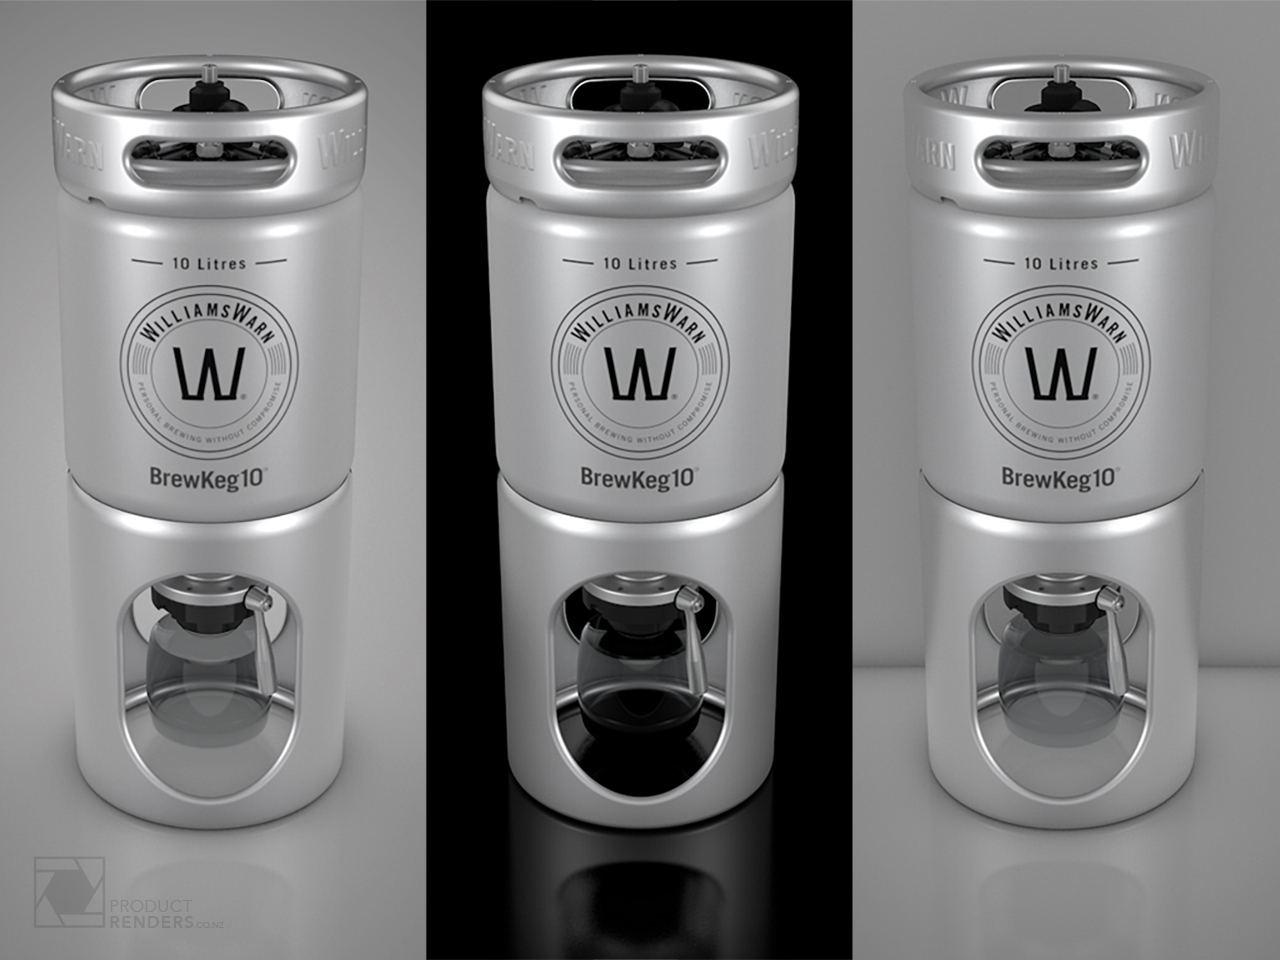 3D render of a WilliamsWarn BrewKeg 10 on different backgrounds